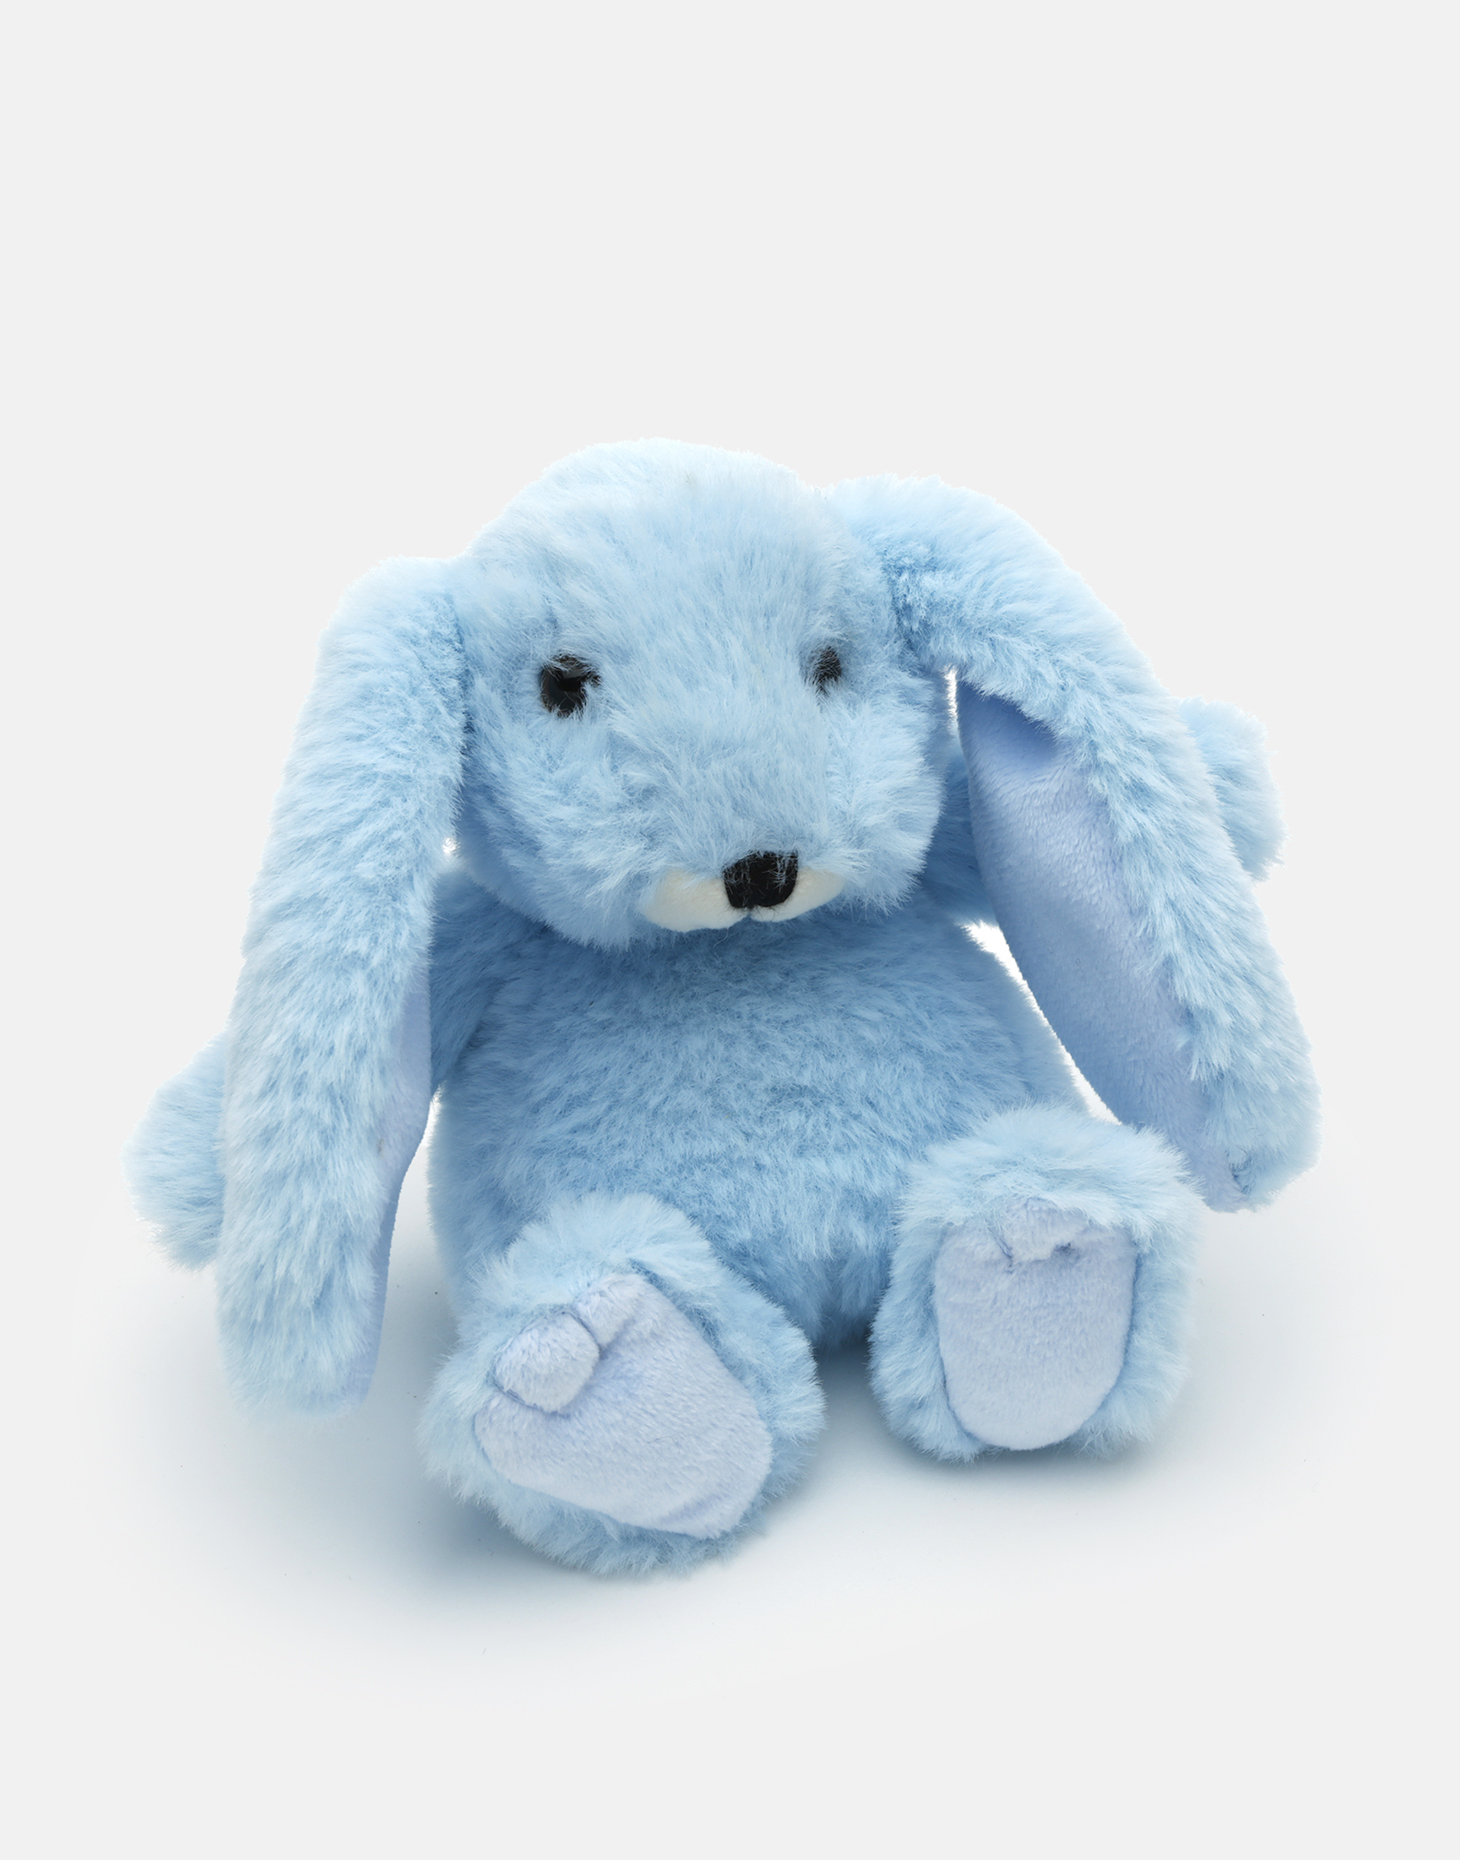 MINI BABY BLUE SNUGGLY BUNNY JOMANDA